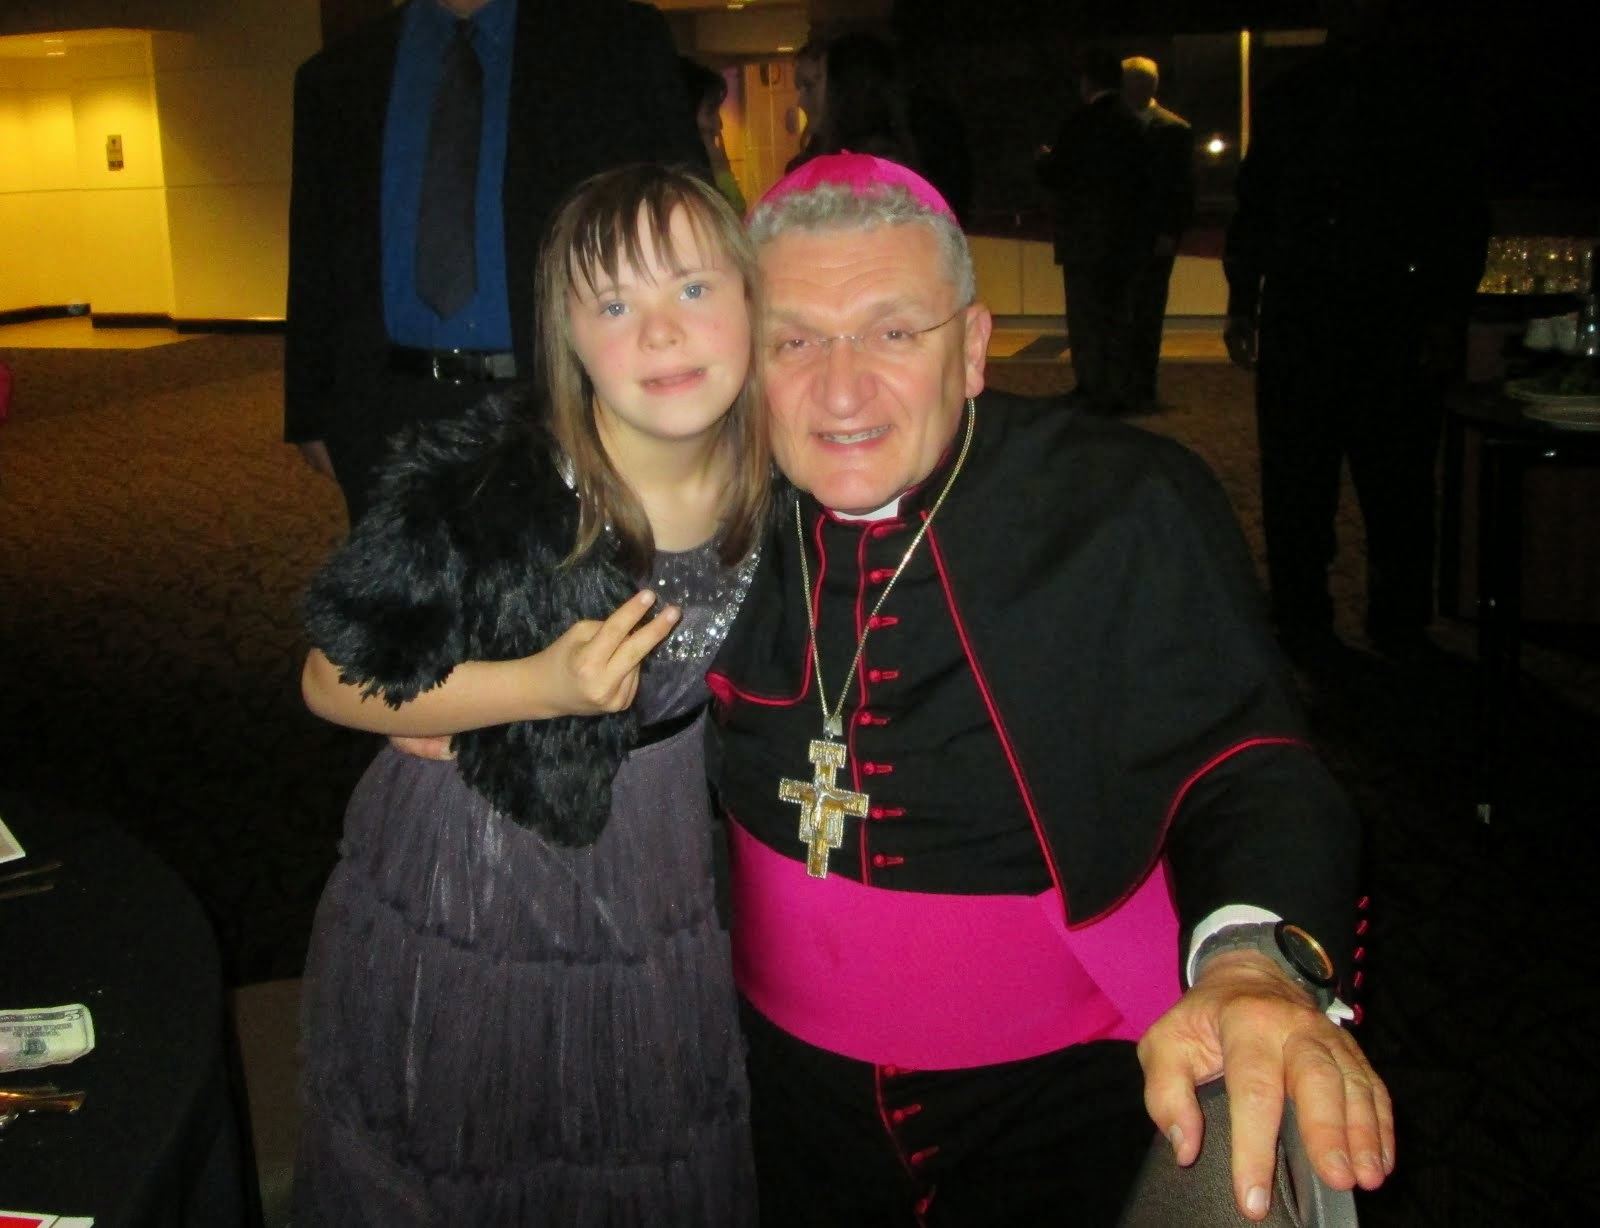 Chloe meets with Pittsburgh Bishop David Zubik